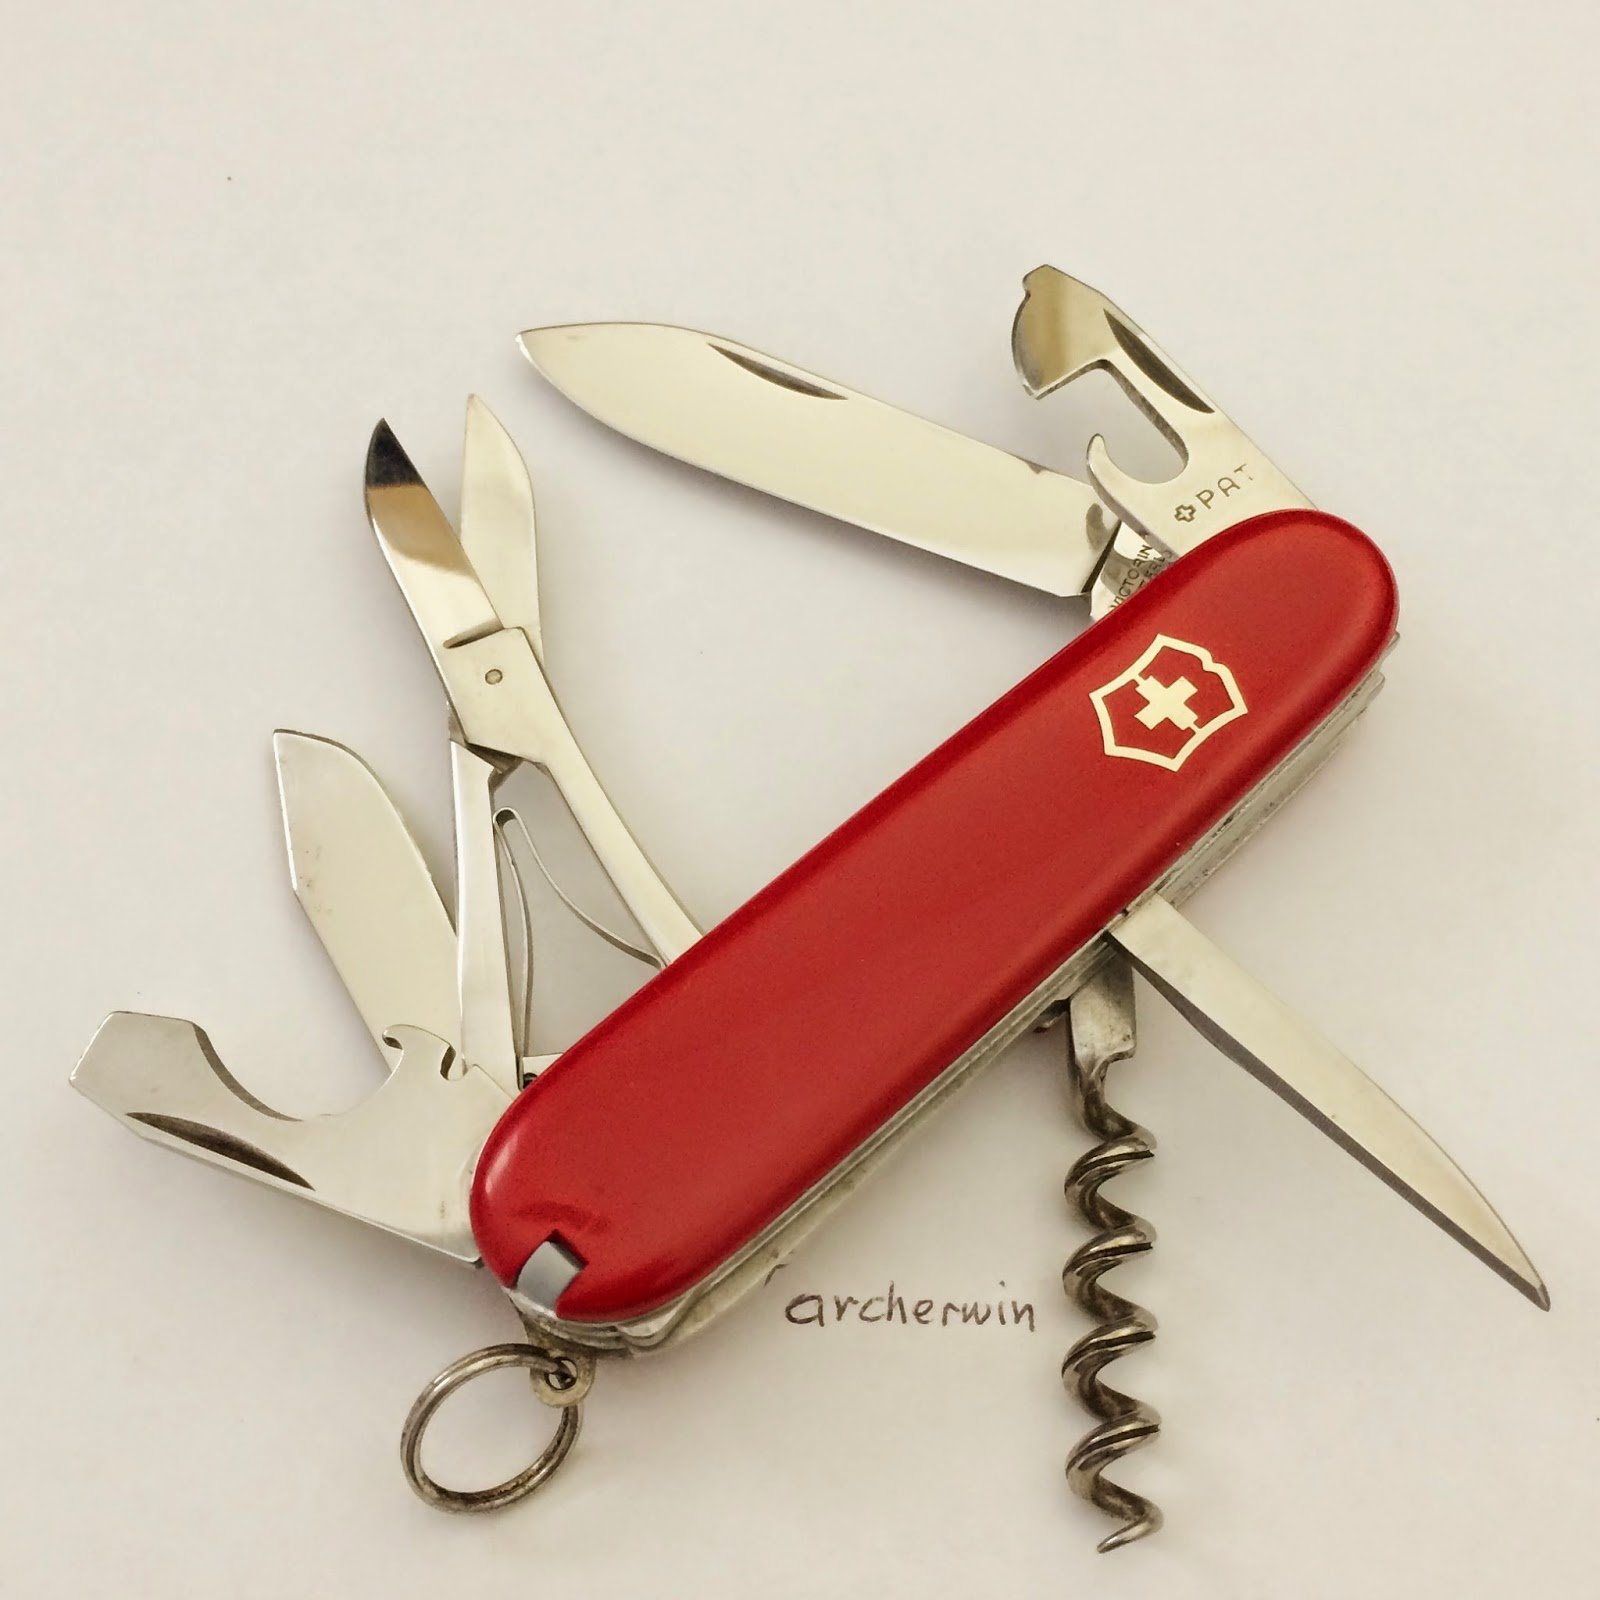 Archerwin S Swiss Army Knives Collection Victorinox Vice